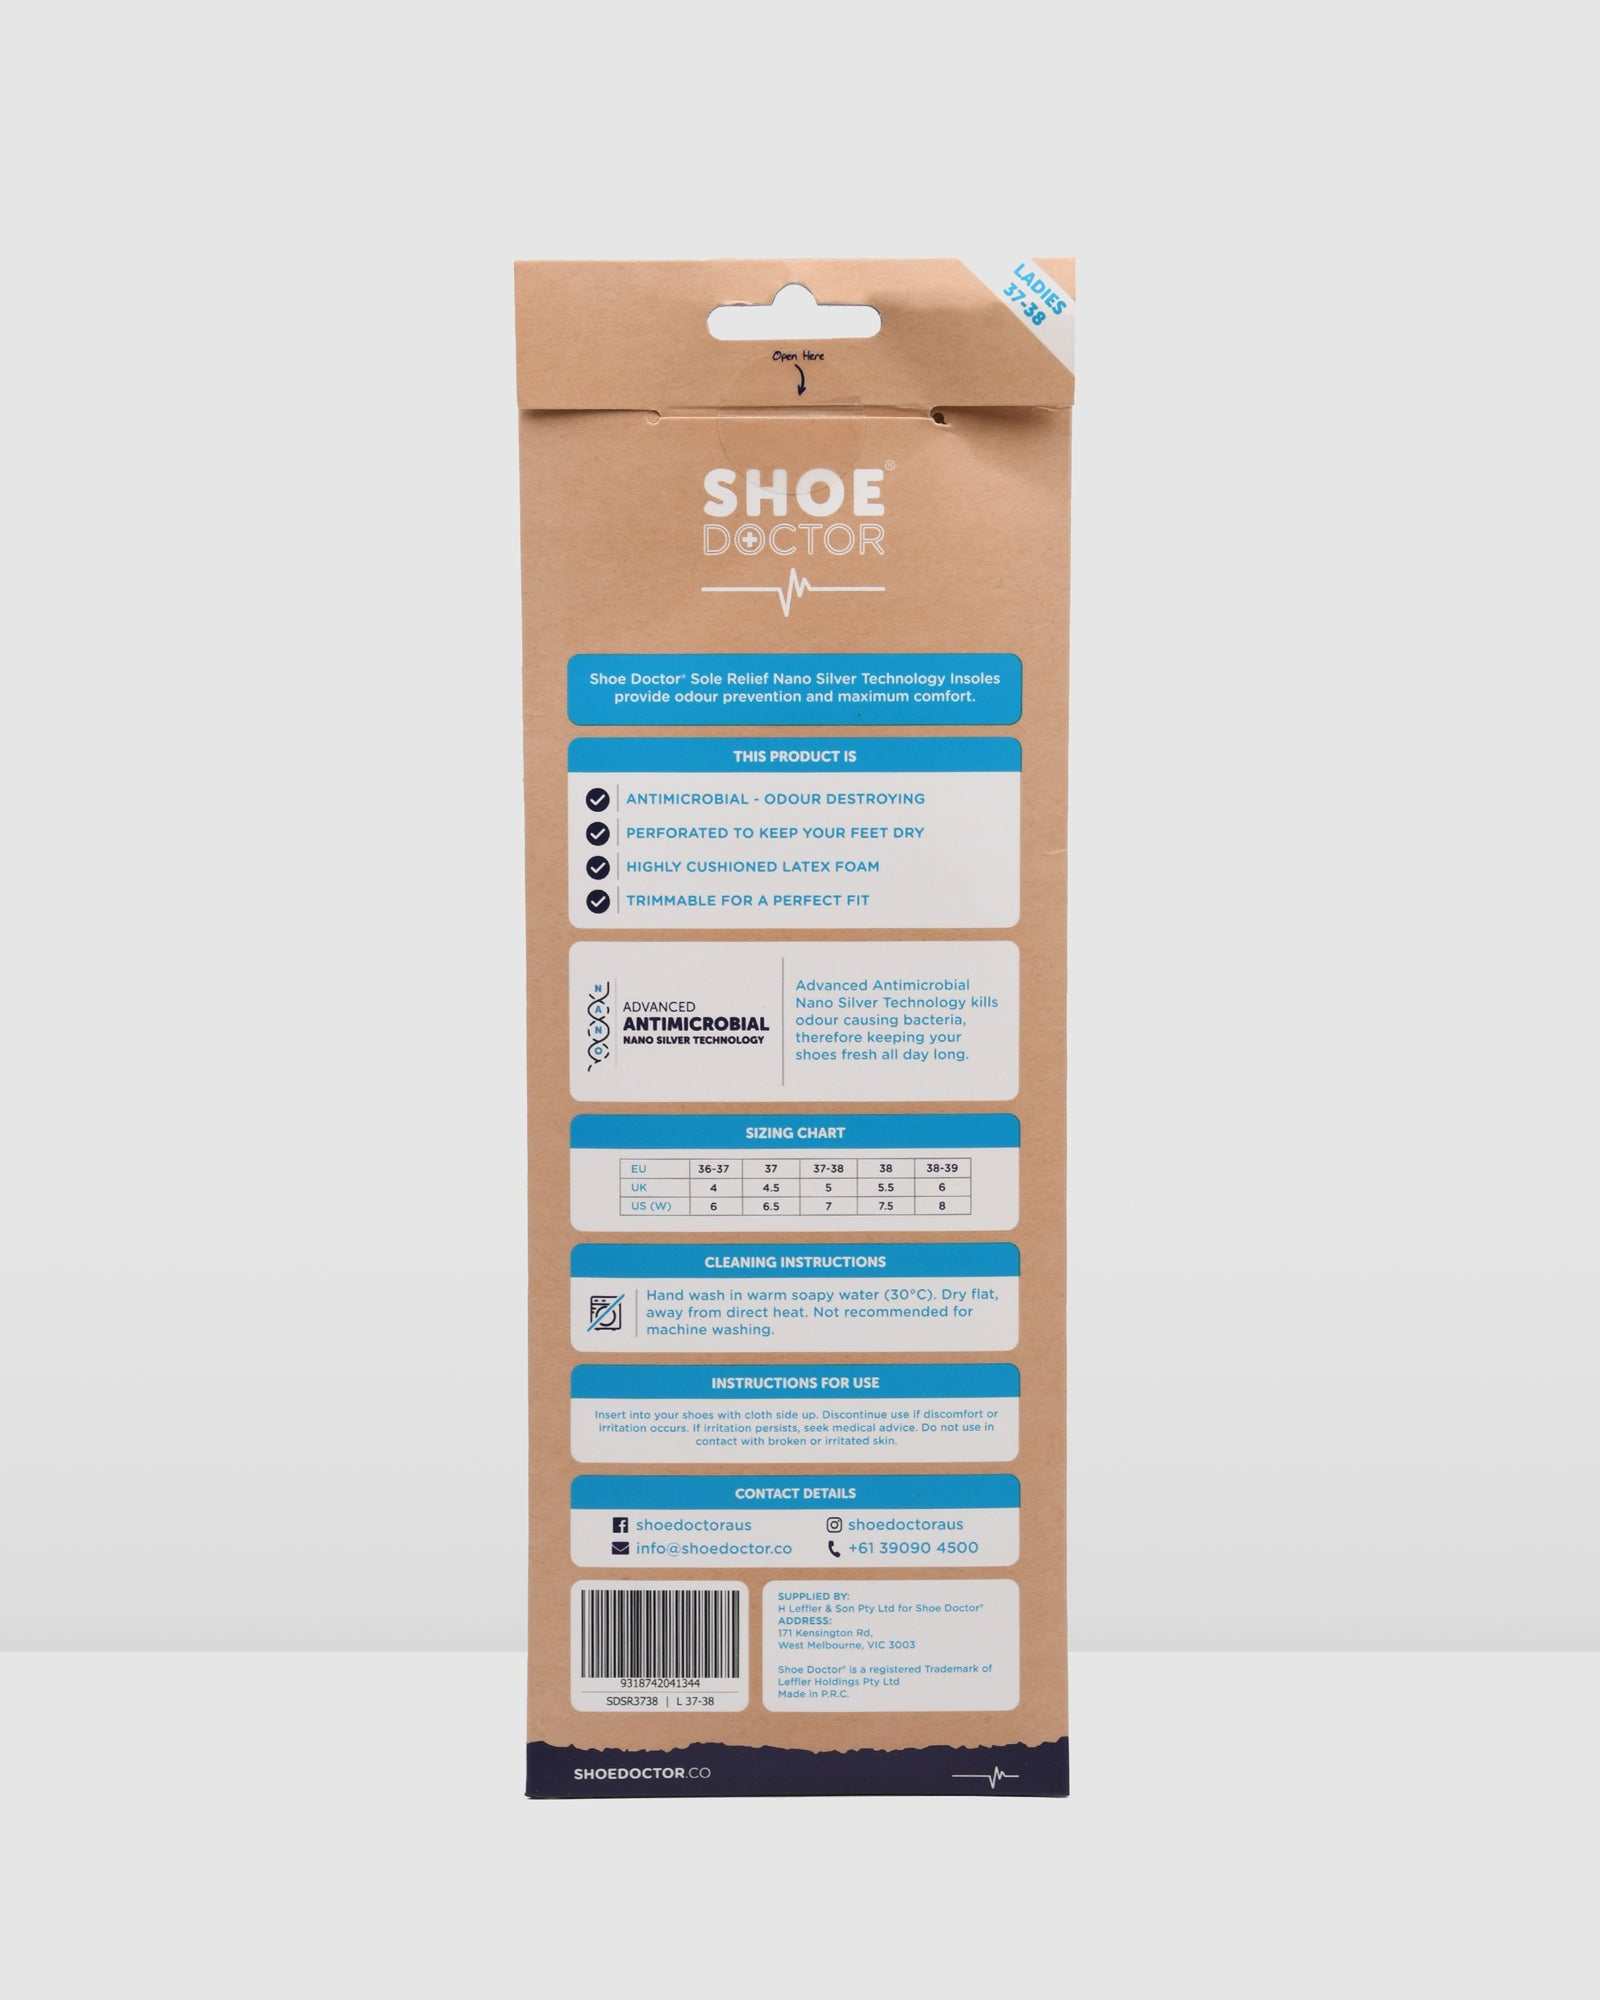 SHOE DOCTOR SOLE RELIEF LARGE